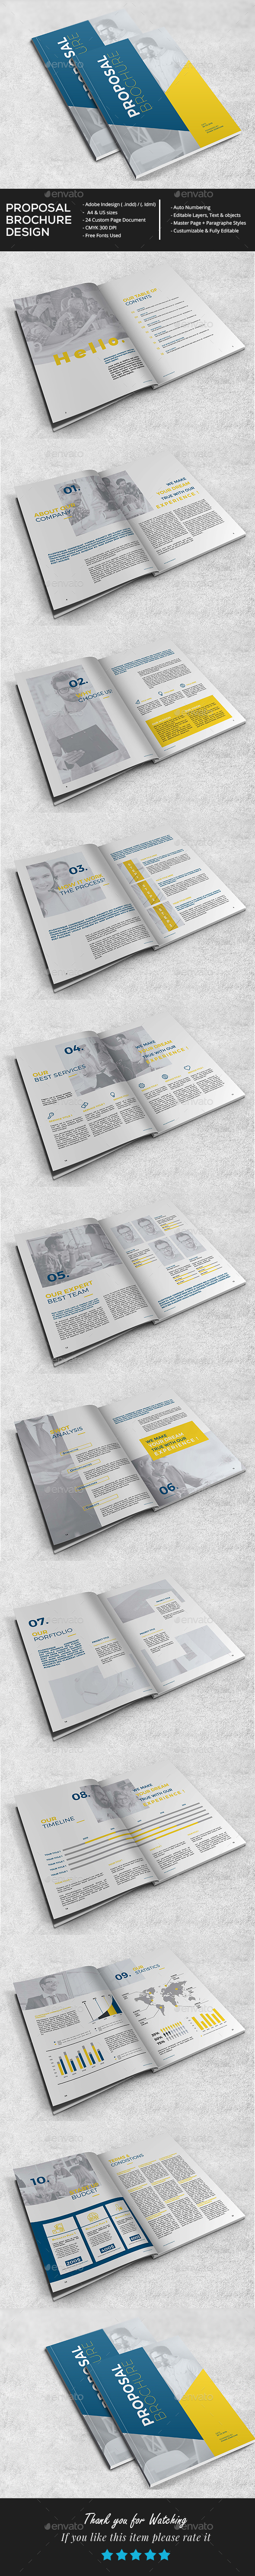 Stylish Proposal Brochure - Brochures Print Templates